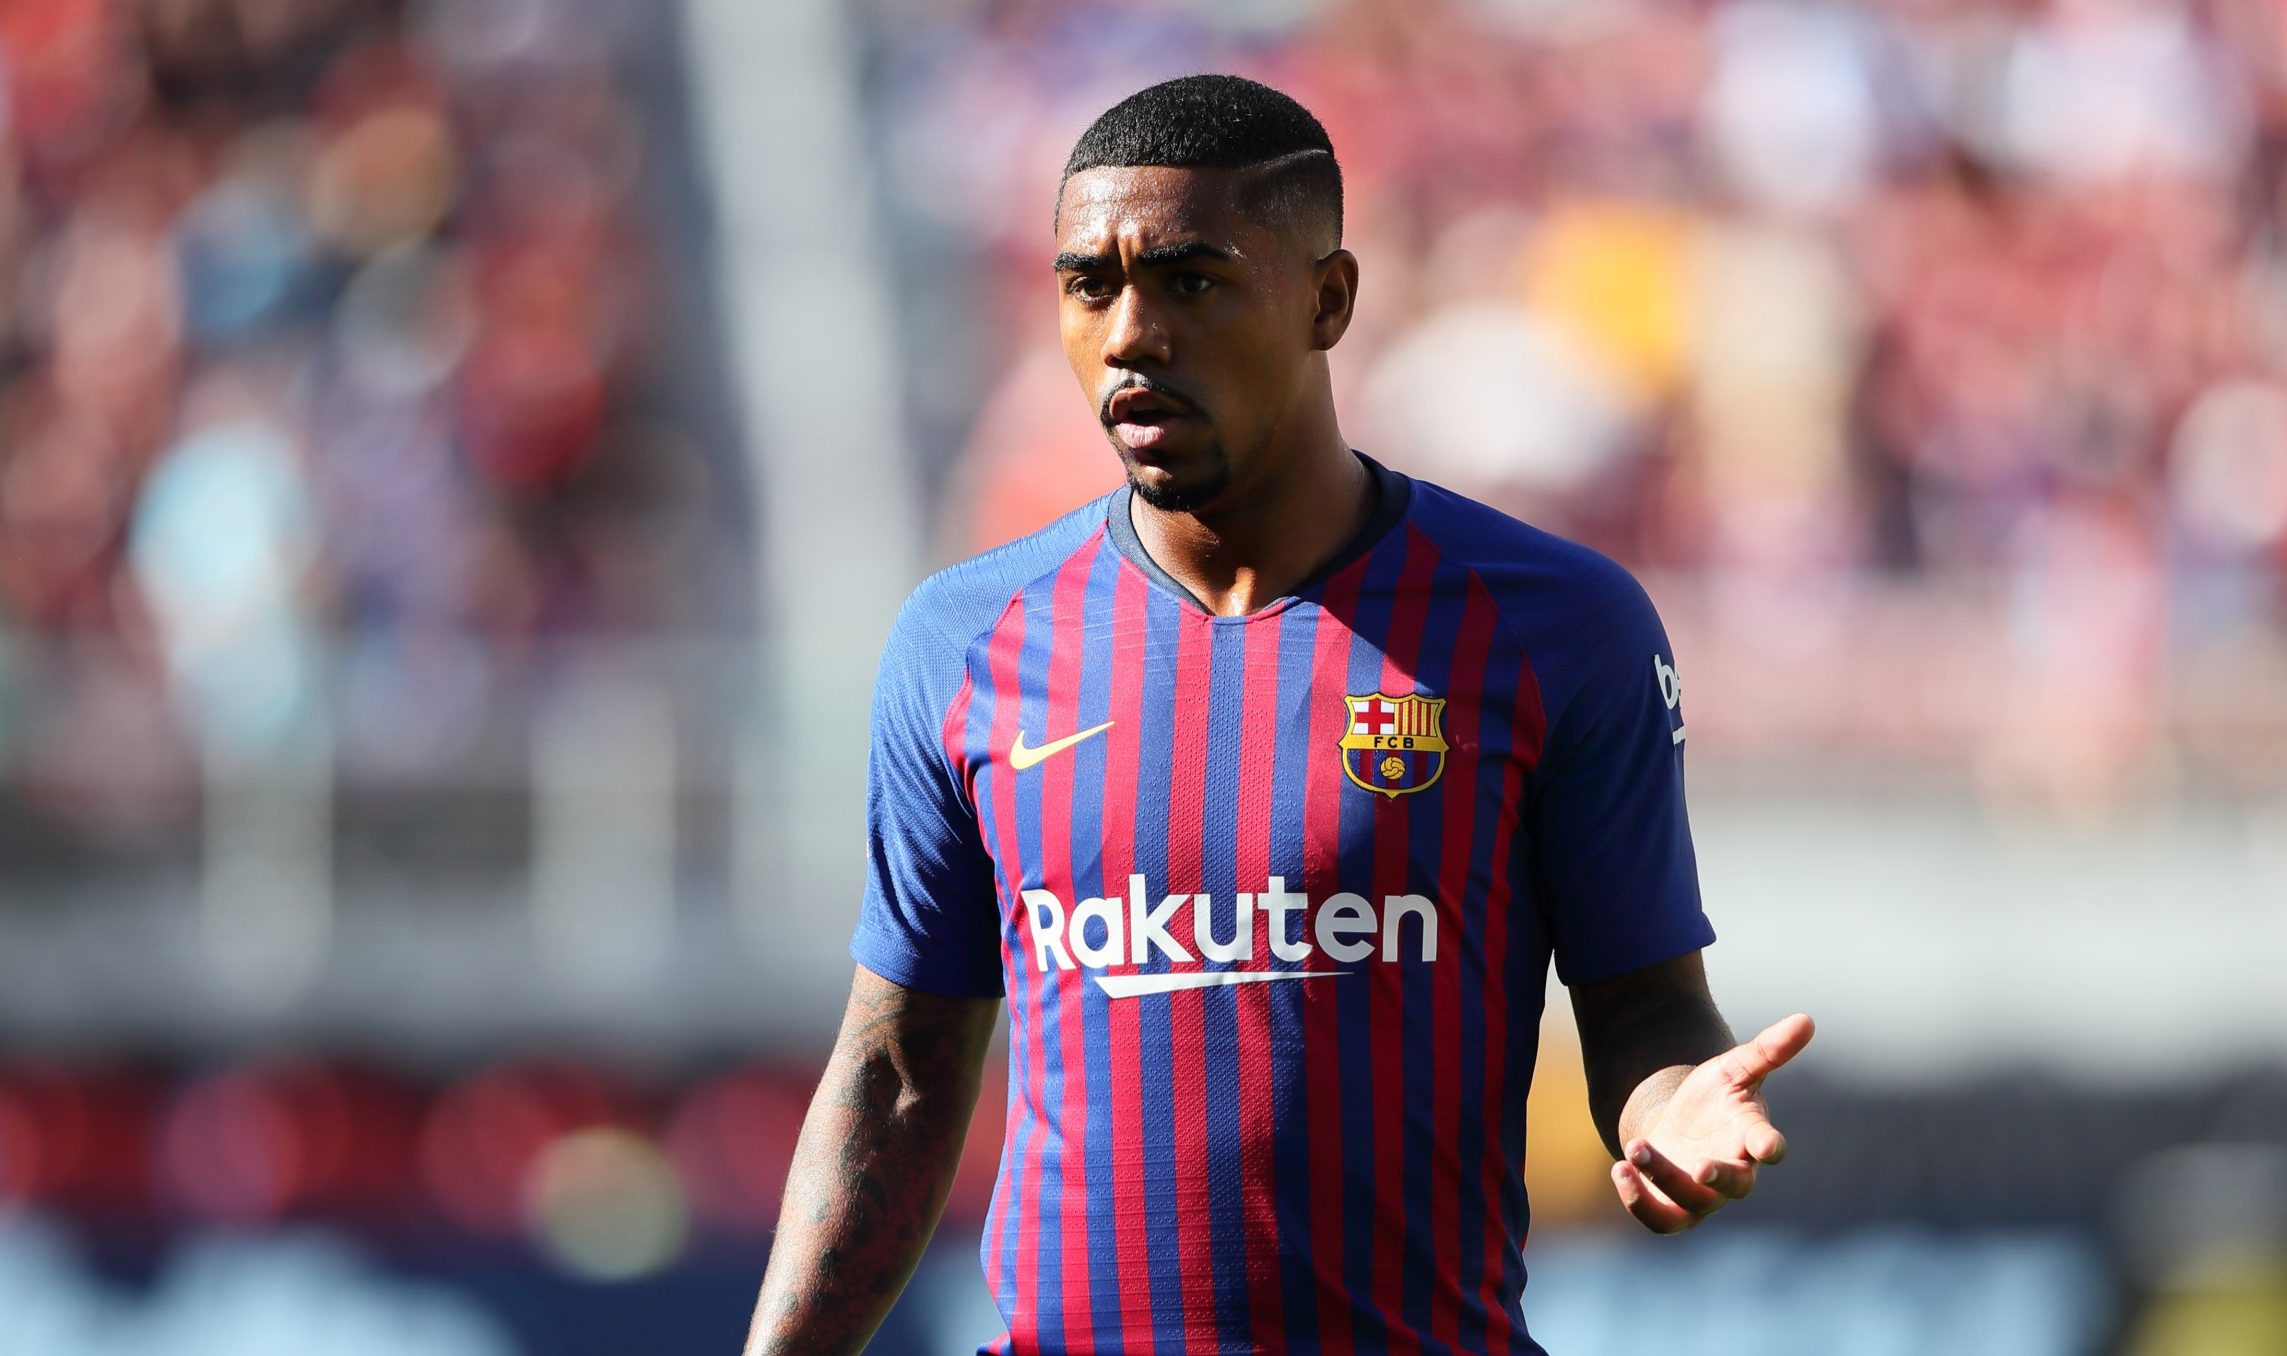 SANTA CLARA, CA - AUGUST 04: Malcom Silva of FC Barcelona during the International Champions Cup 2018 match between AC Milan and FC Barcelona at Levi's Stadium on August 4, 2018 in Santa Clara, California. (Photo by Matthew Ashton - AMA/Getty Images)